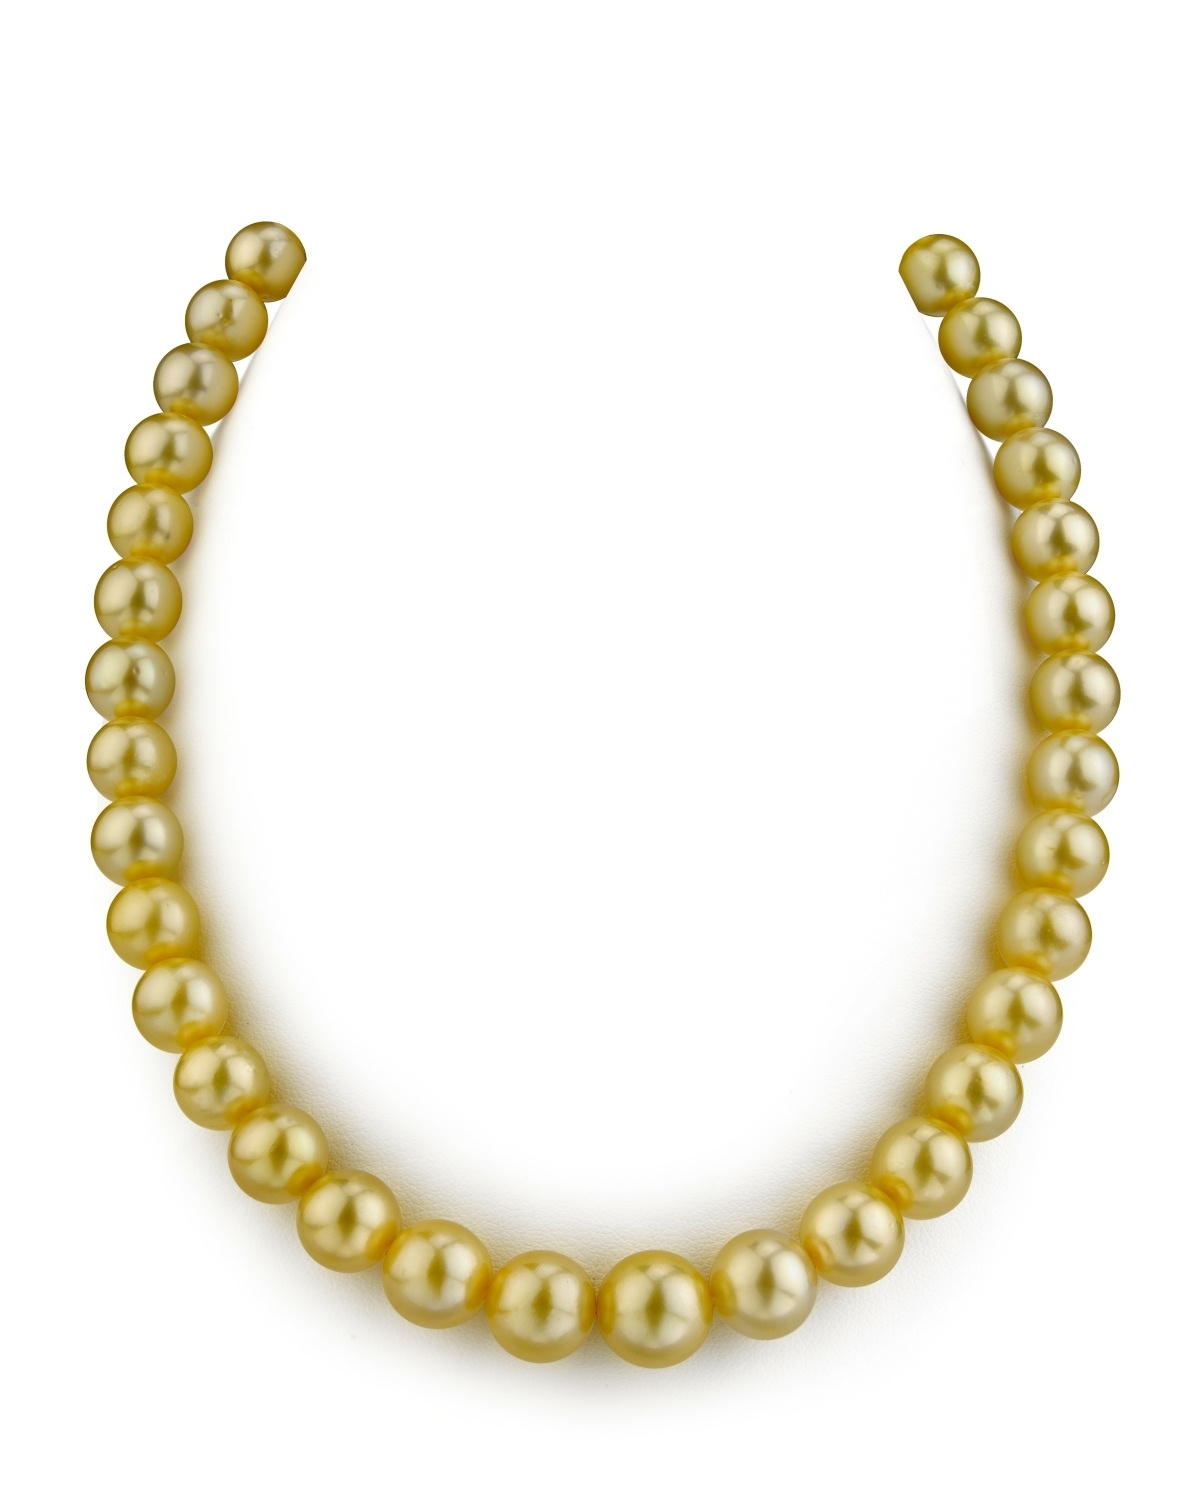 9-11mm Golden South Sea Pearl Necklace - AAAA Quality